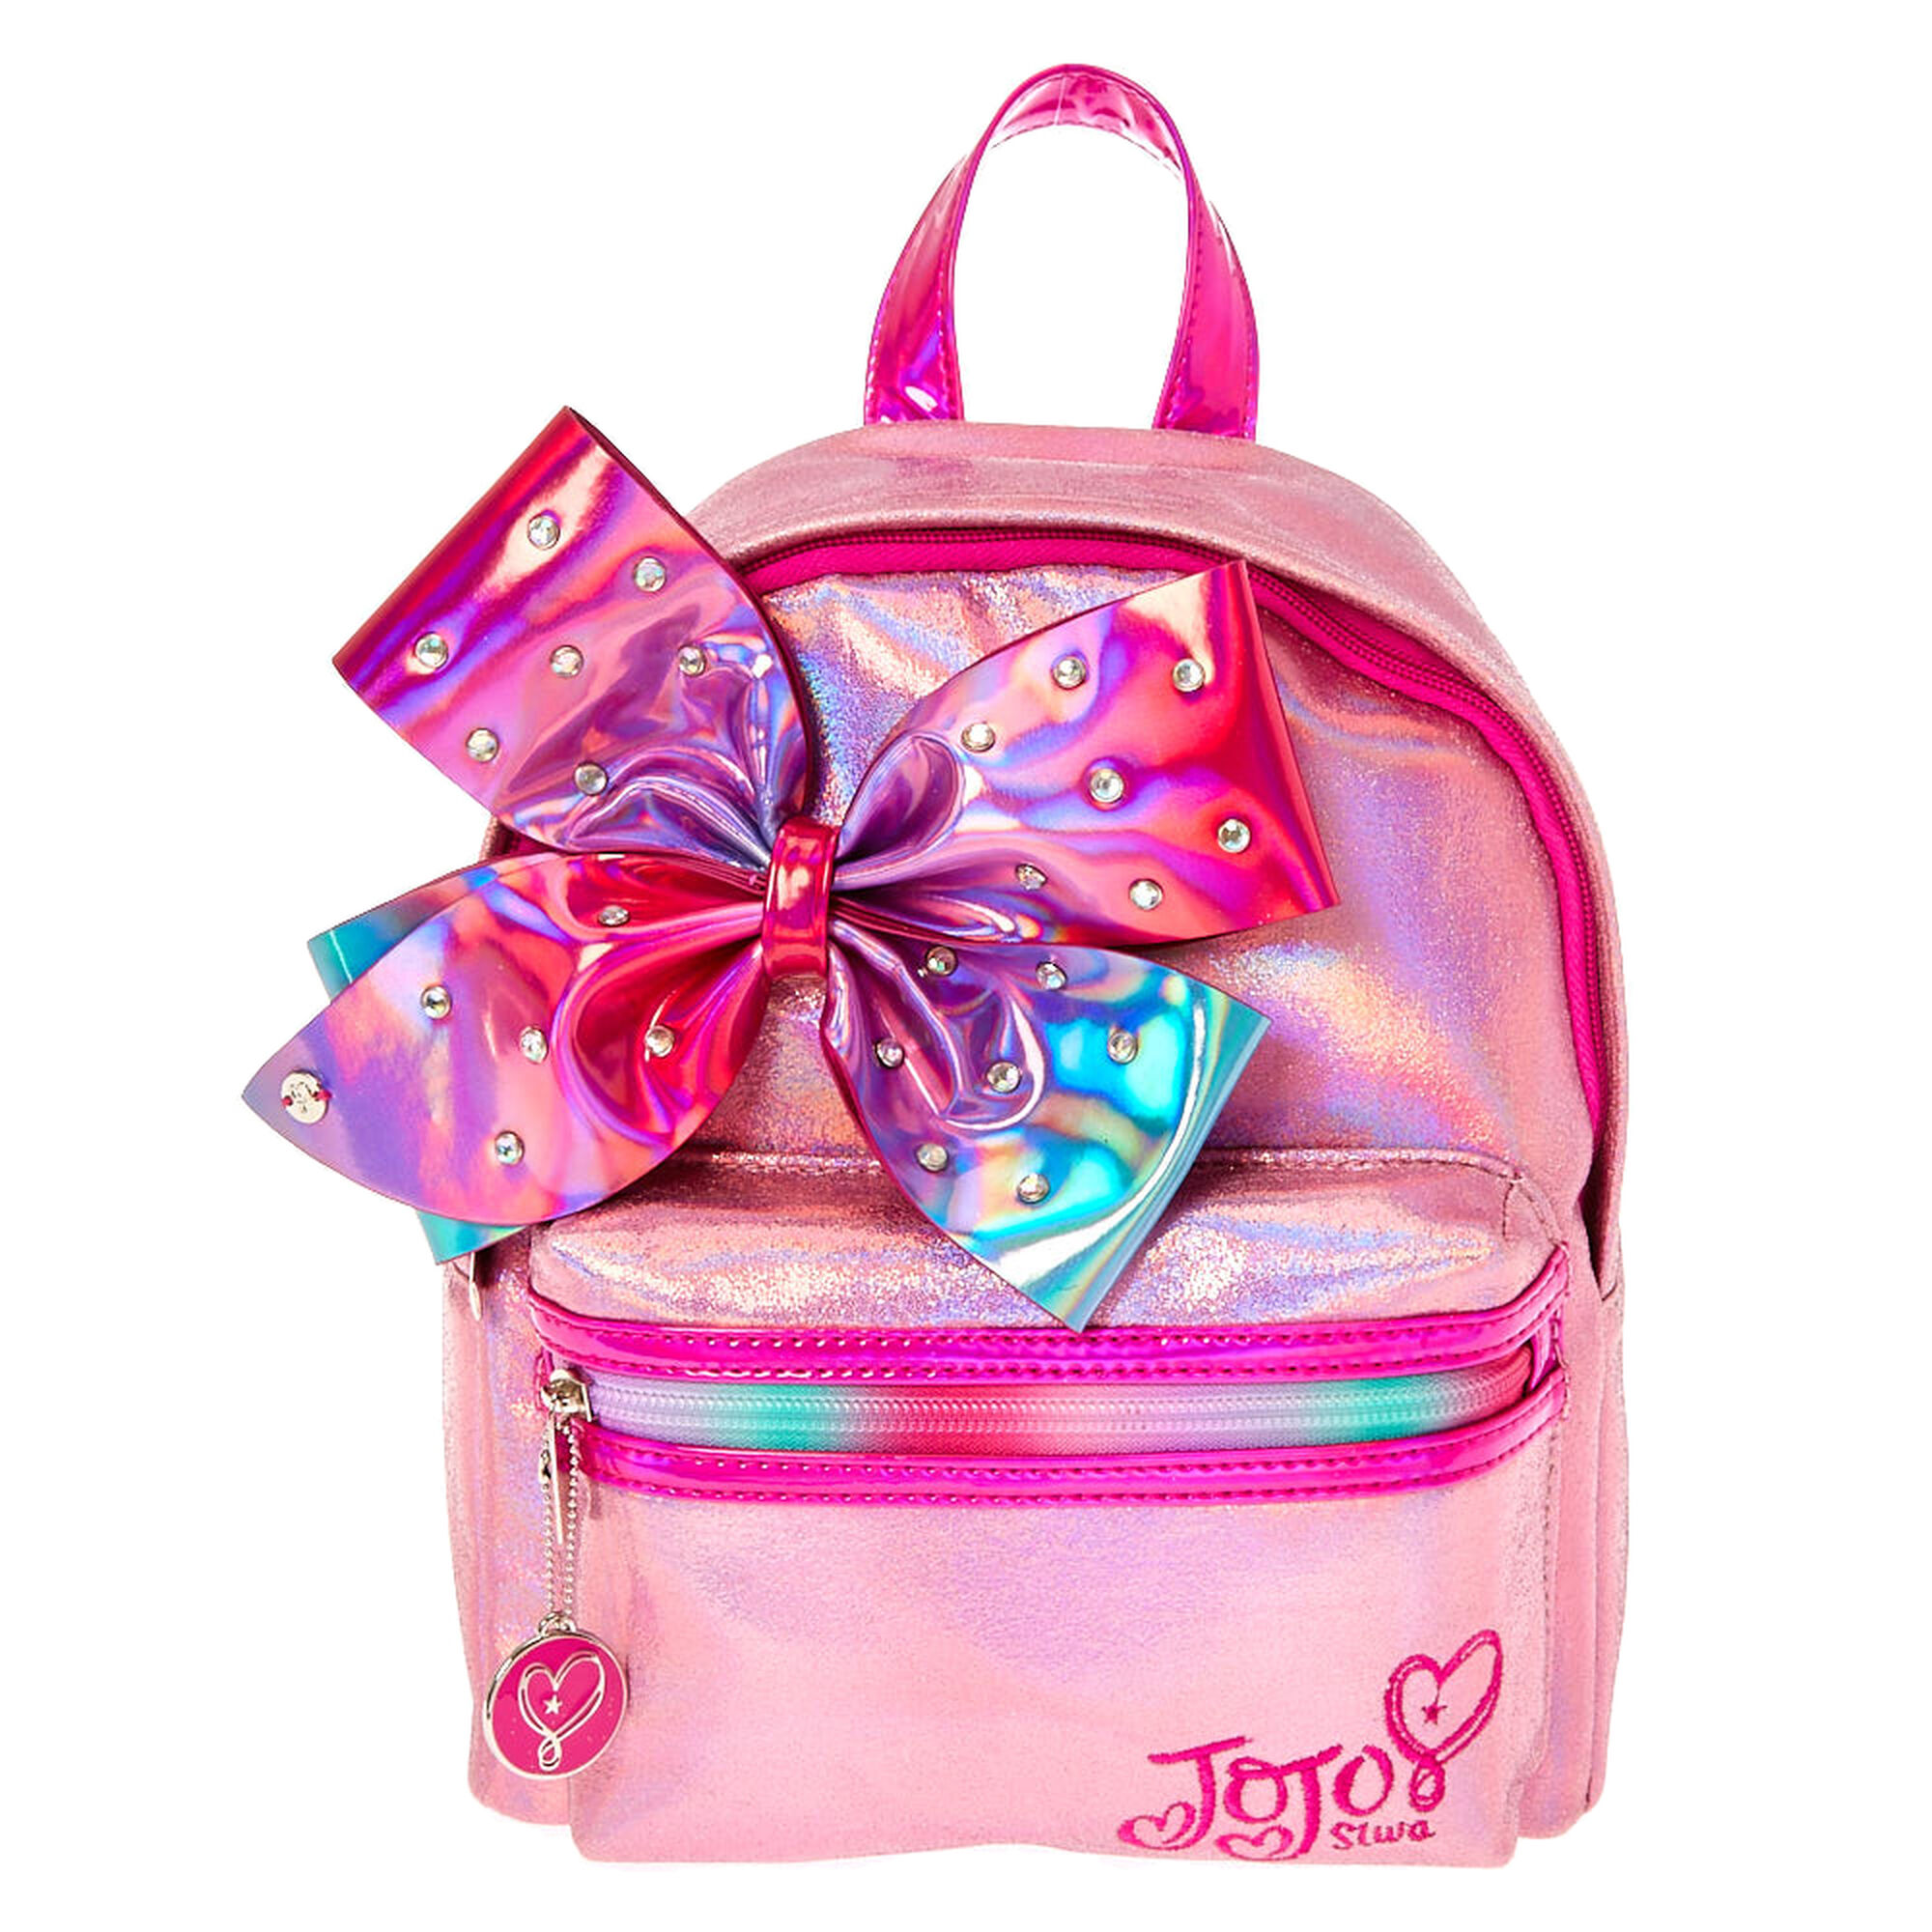 Jojo Siwa Pink Shimmer Bedazzled Bow Mini Backpack